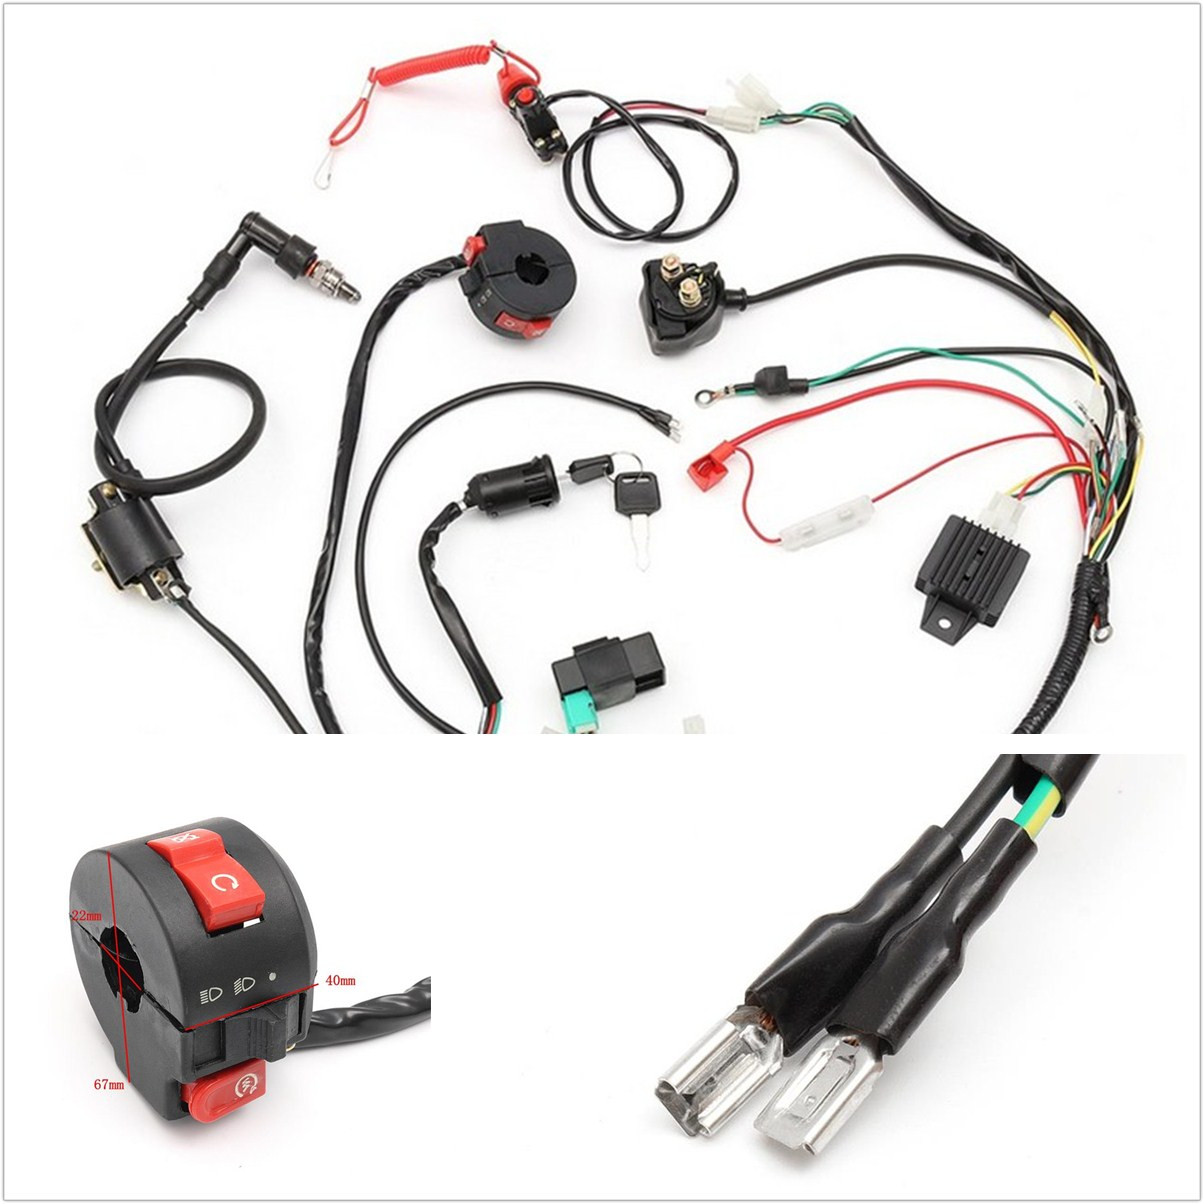 hight resolution of details about professional cdi motorcycle wiring harness loom solenoid coil rectifier 50 125cc